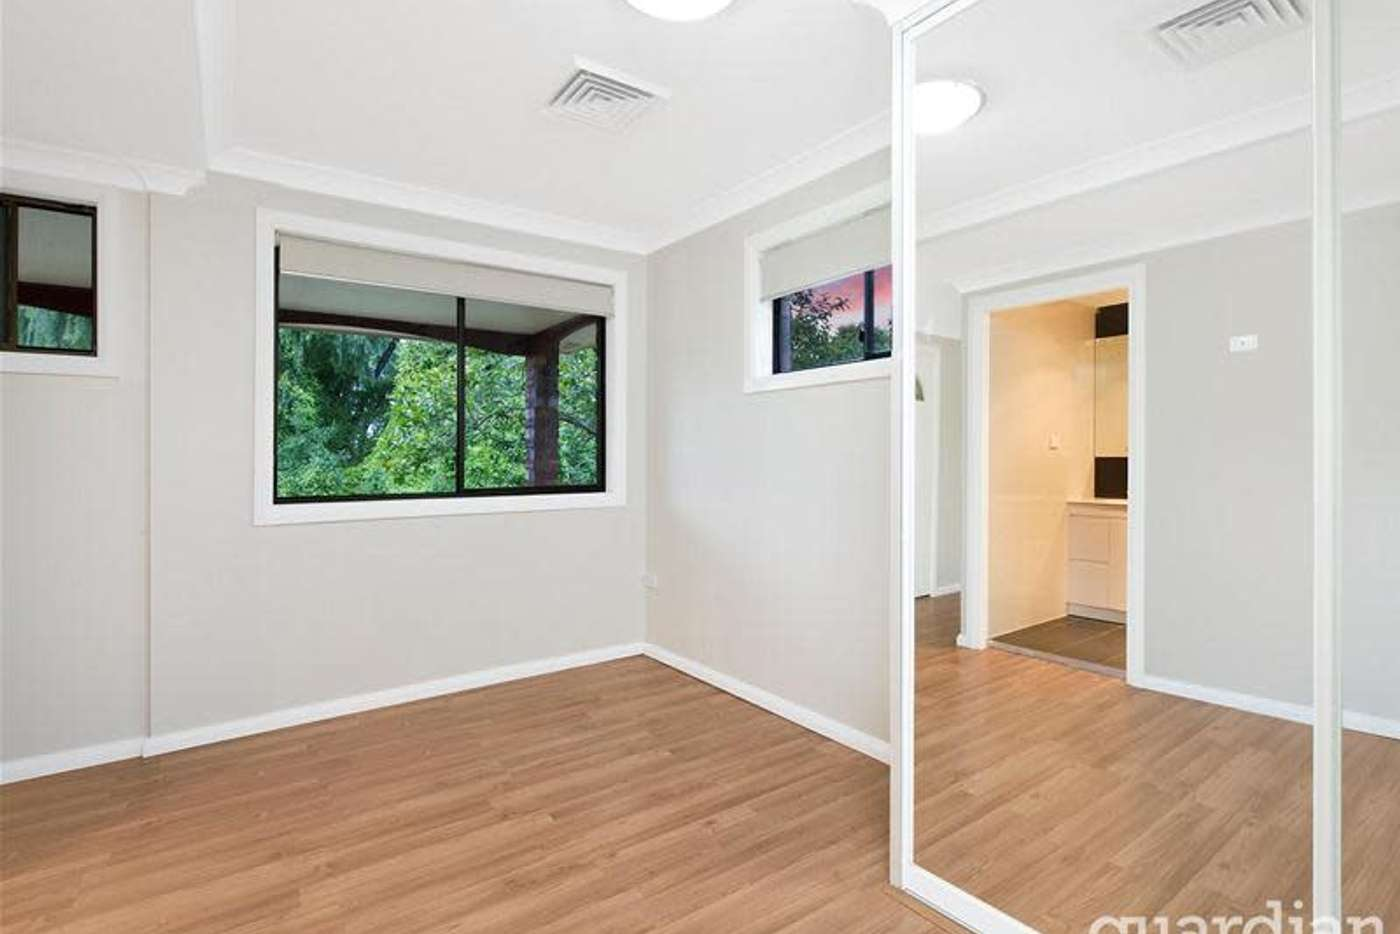 Fifth view of Homely house listing, 13 Attard Avenue, Marayong NSW 2148